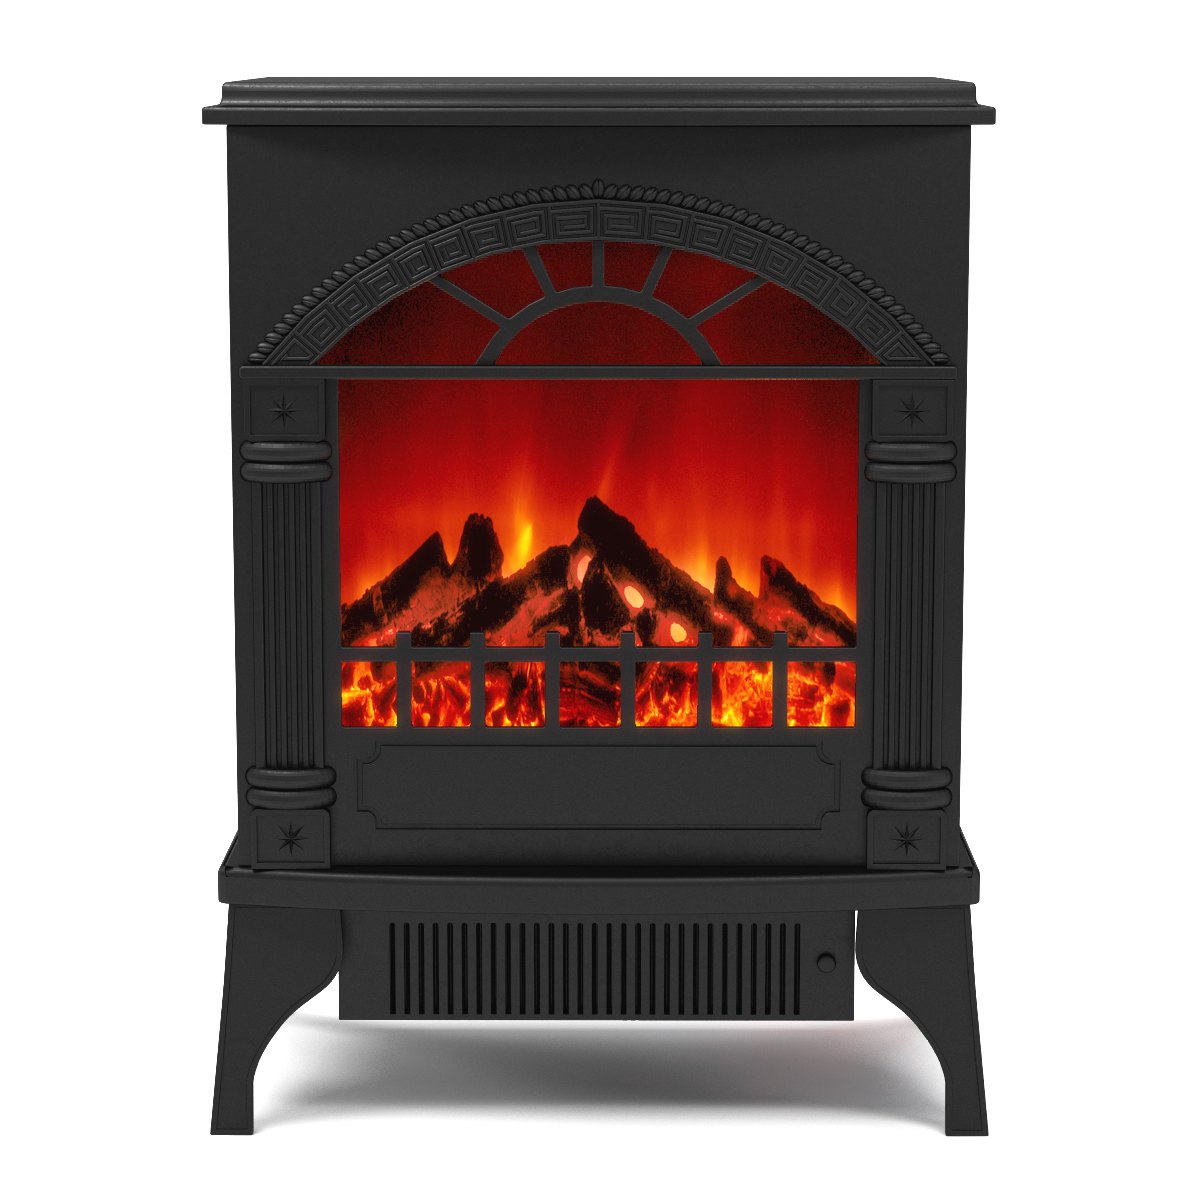 Apollo electric fireplace free standing portable space Free standing fireplace